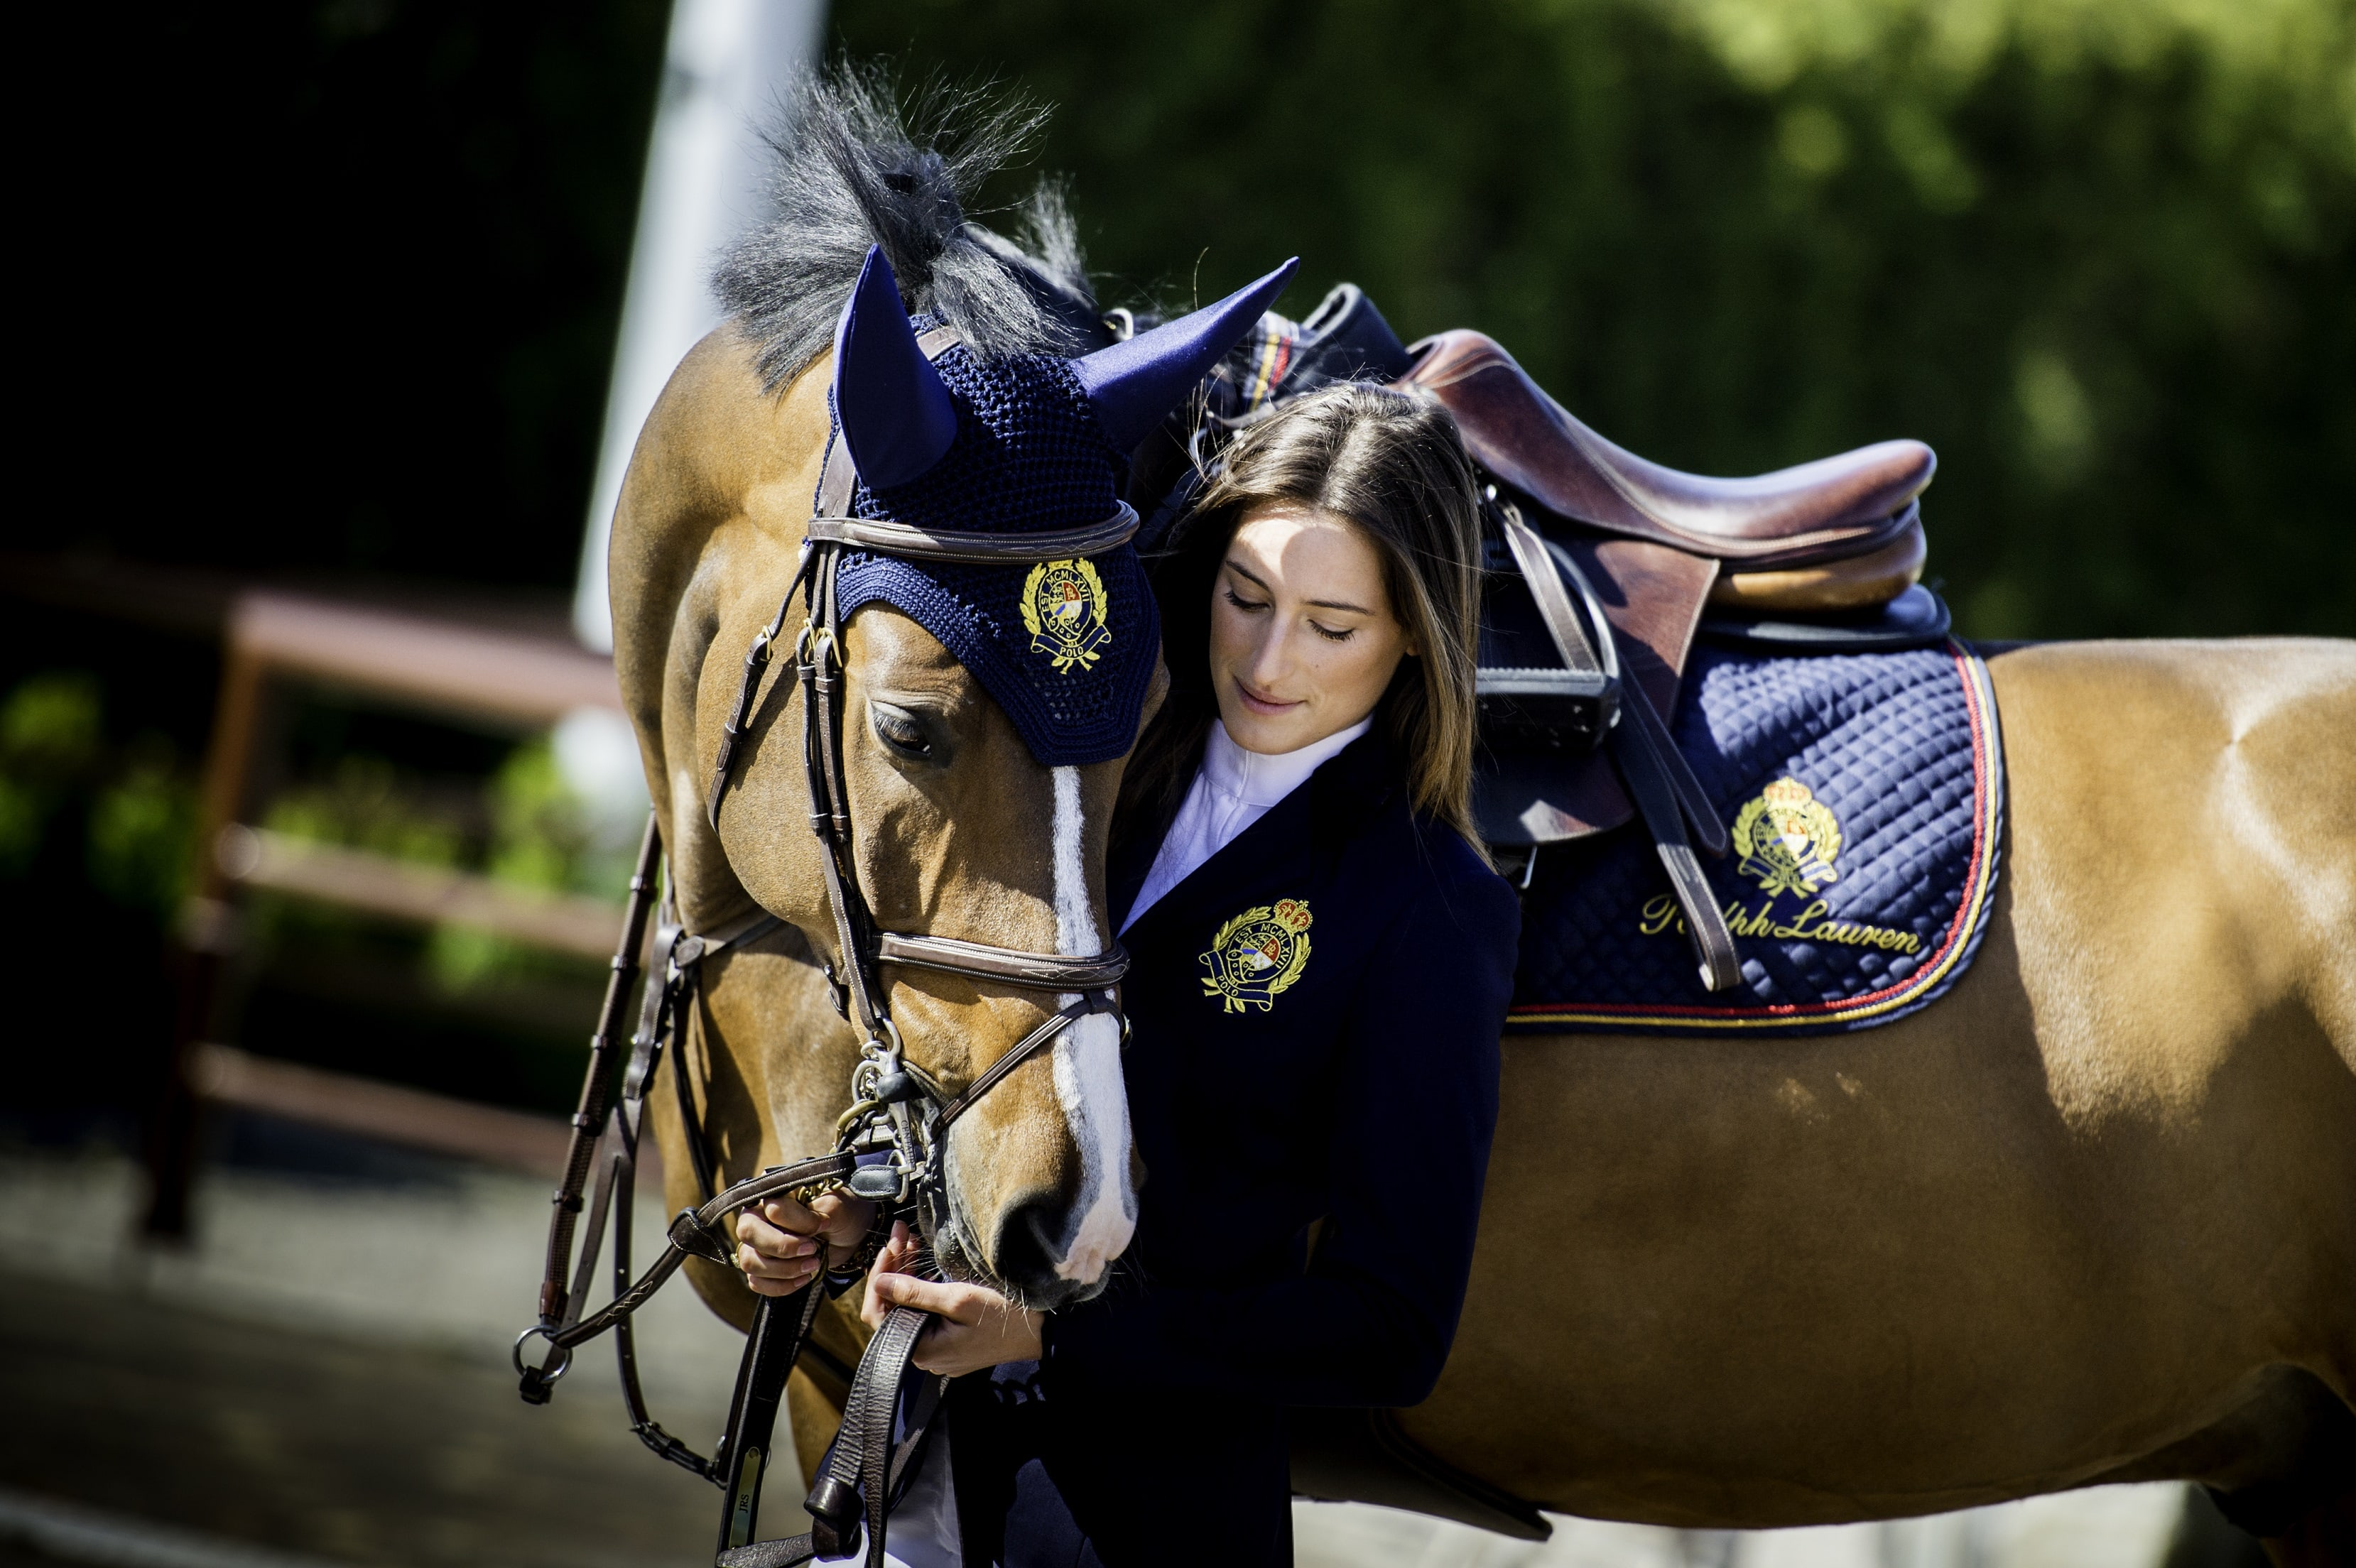 ONE TO FOLLOW: JESSICA SPRINGSTEEN